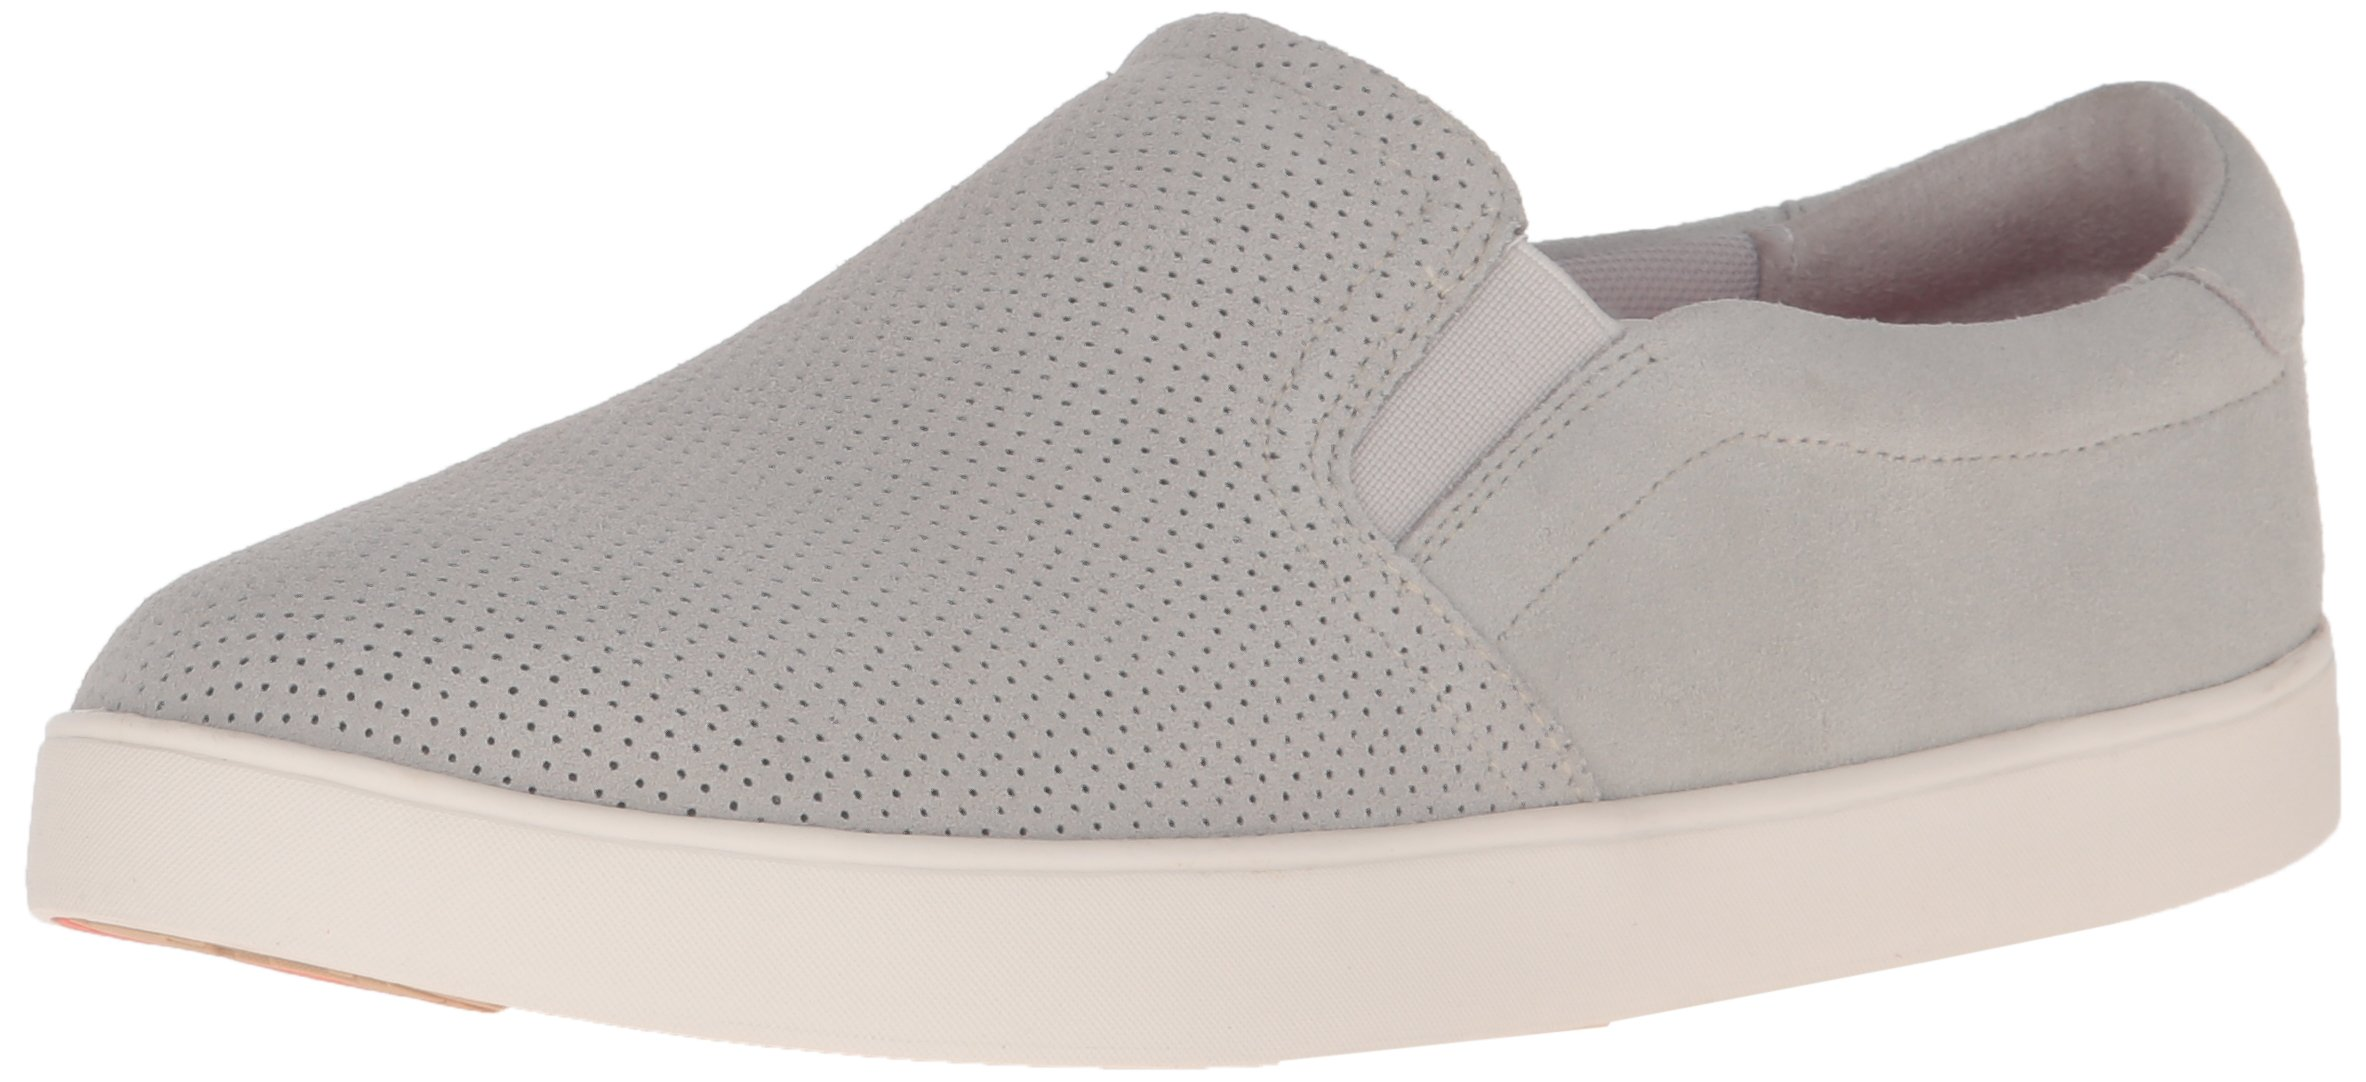 Dr. Scholl's Shoes Women's Madison Fashion Sneaker, Bone Perforated, 10 M US